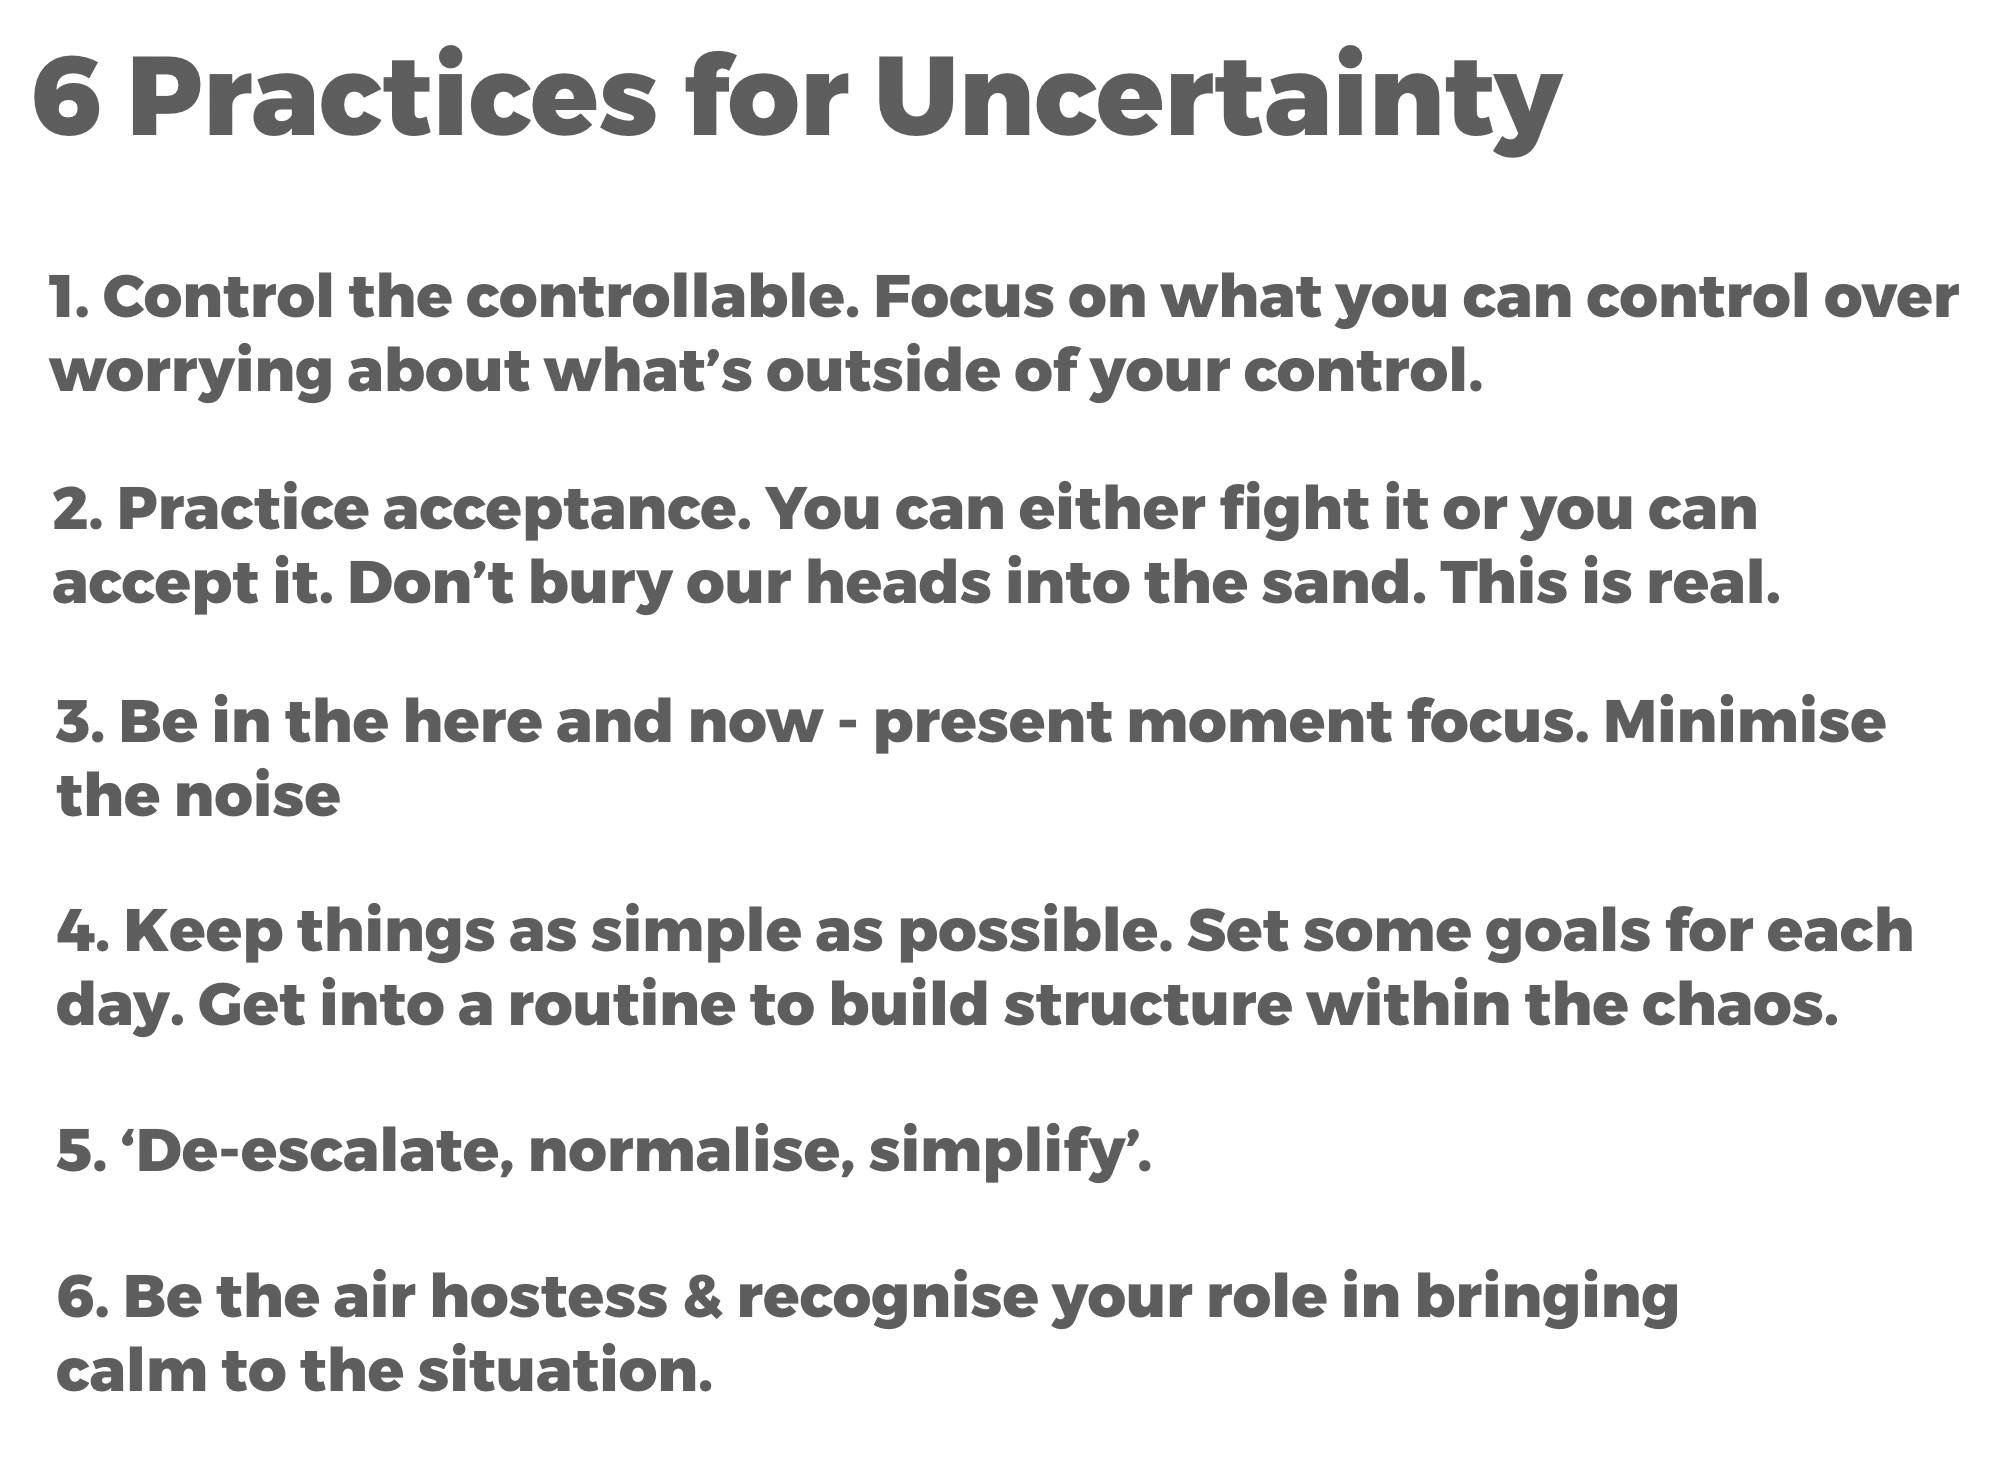 6 practices for uncertainty